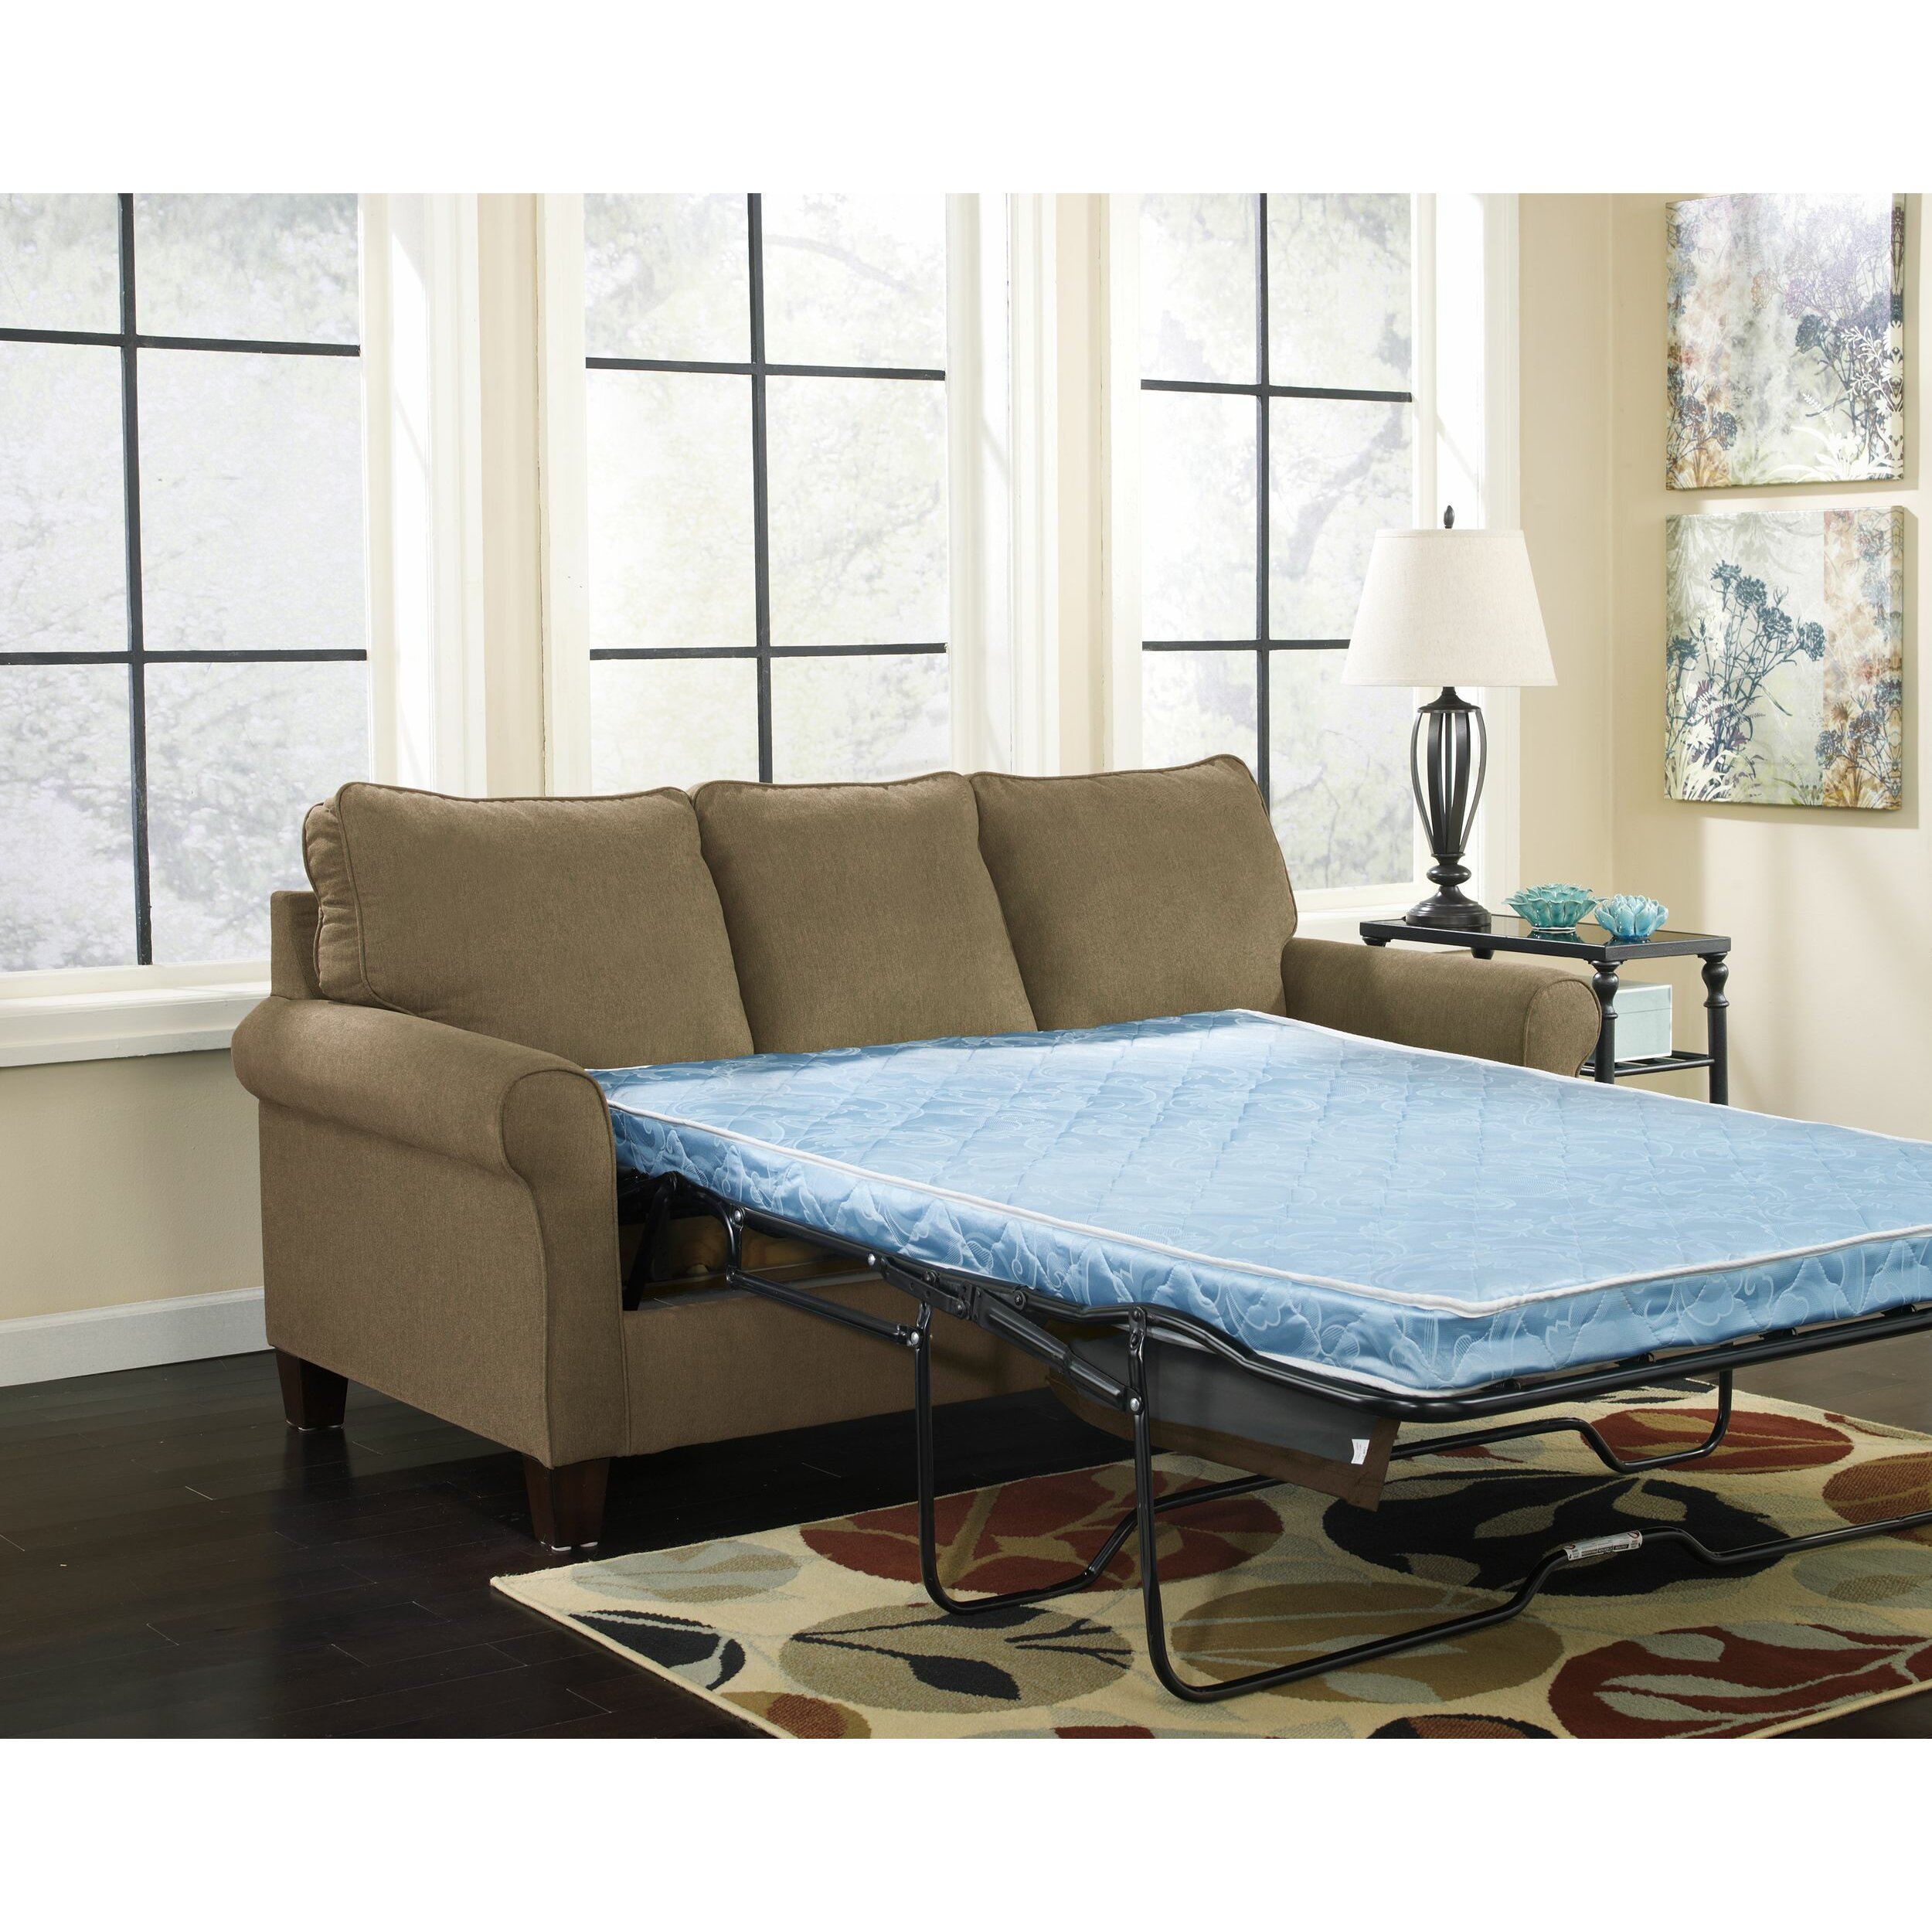 Fantastic Furniture Sofa Bed Review